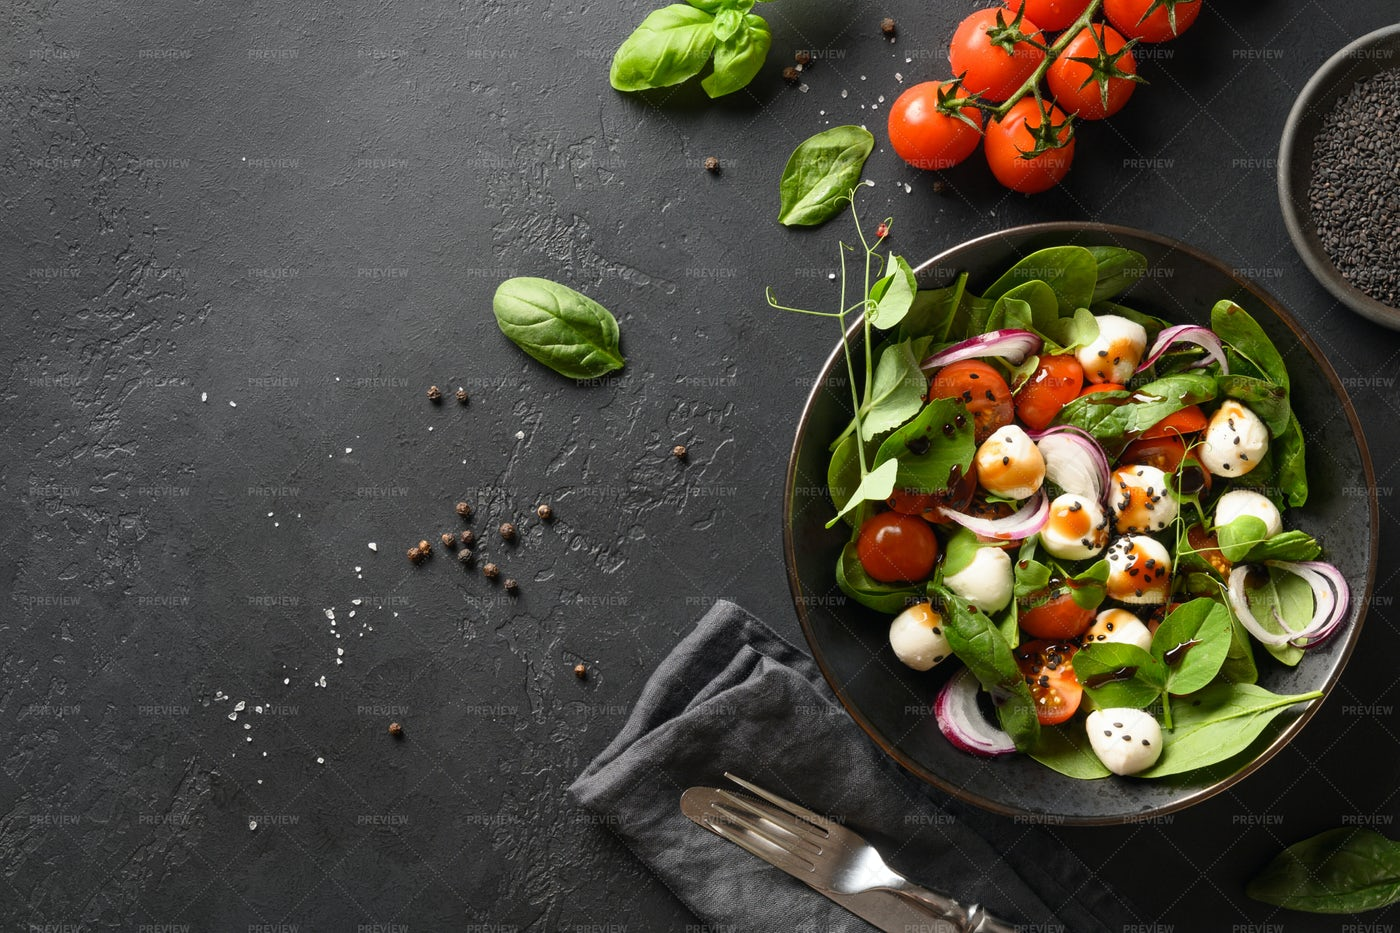 Salad With Spinach And Tomatoes: Stock Photos